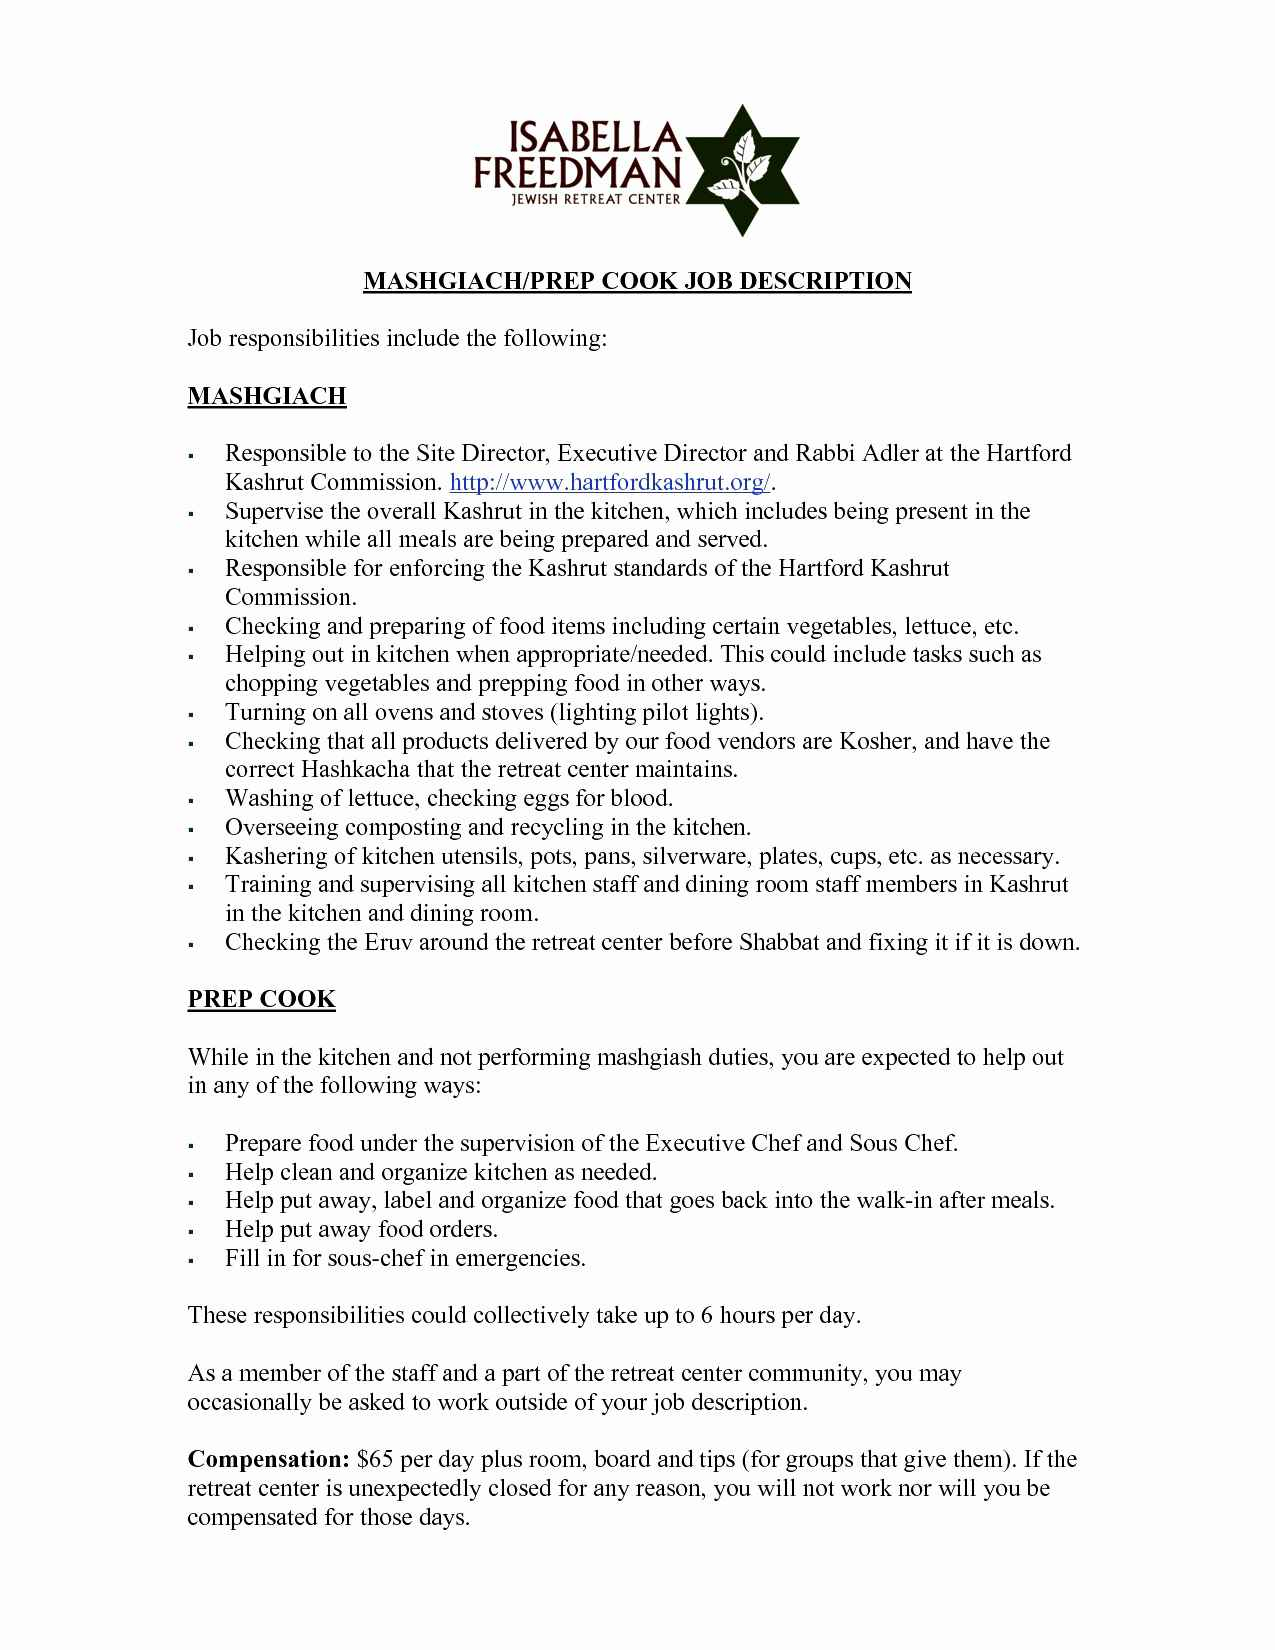 Template for Cover Letter for Teaching Position - Sample Resume for Line Teaching Position Inspirational Resume and